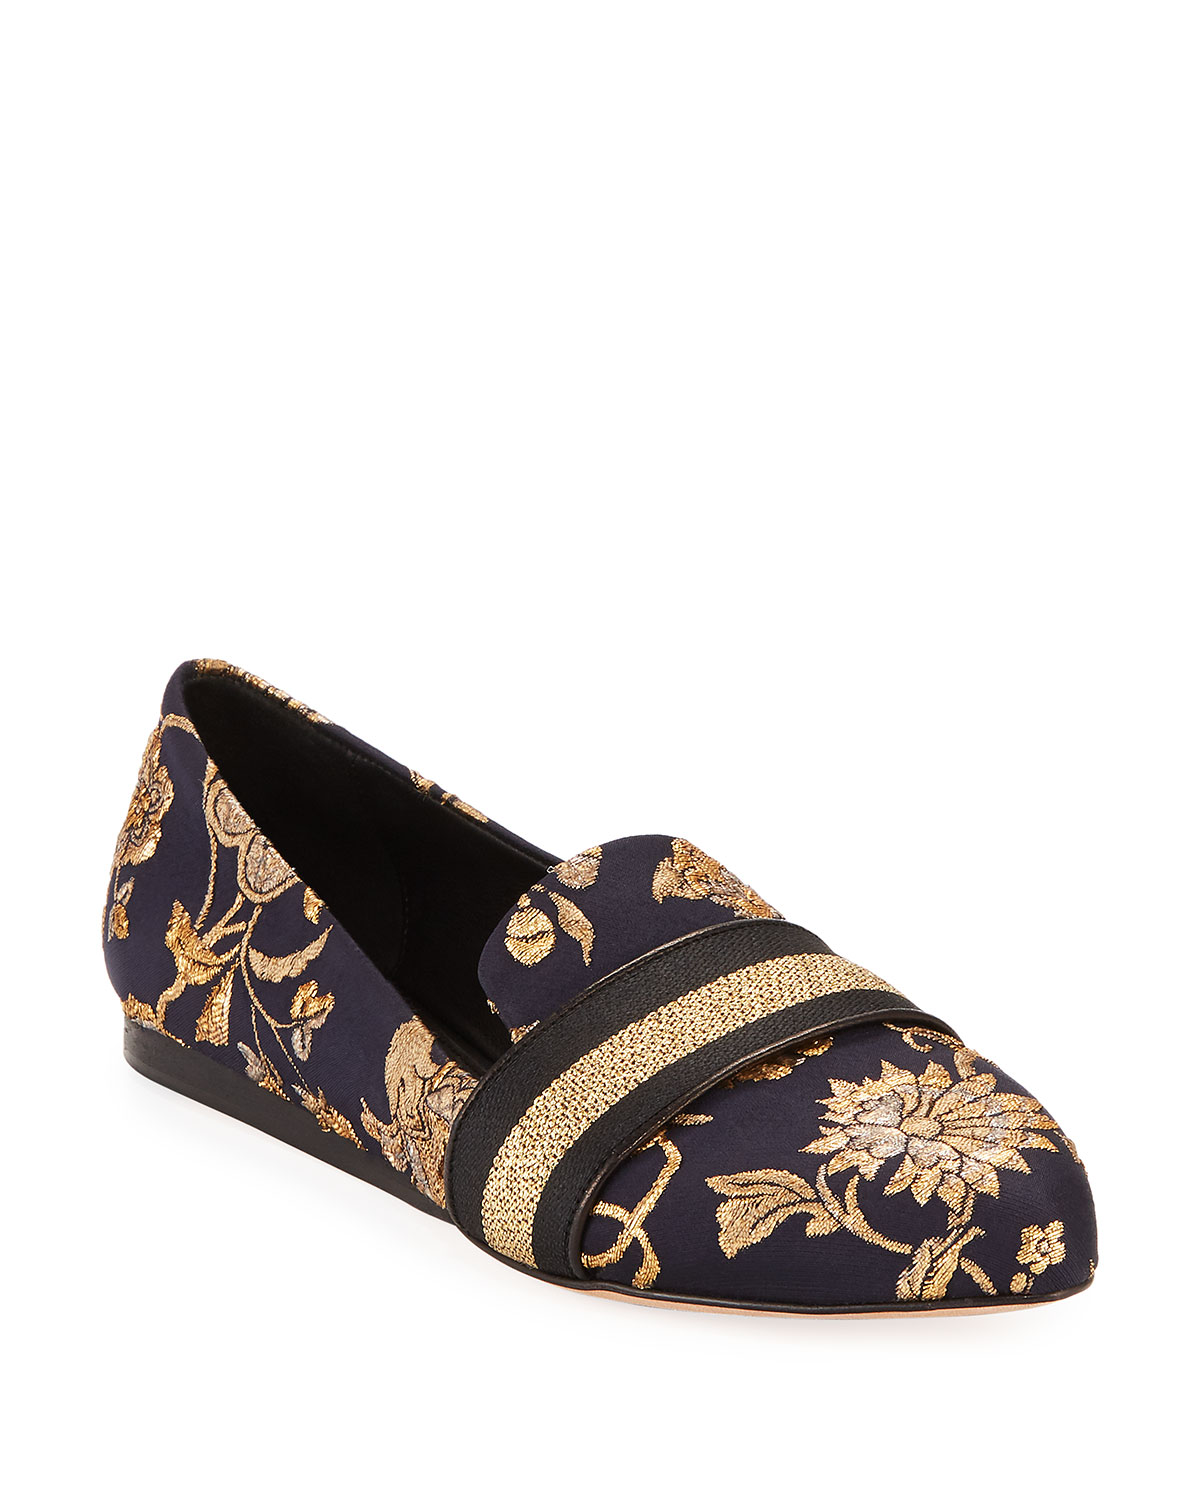 Griffin Flat Metallic Brocade Loafers, Black/Gold